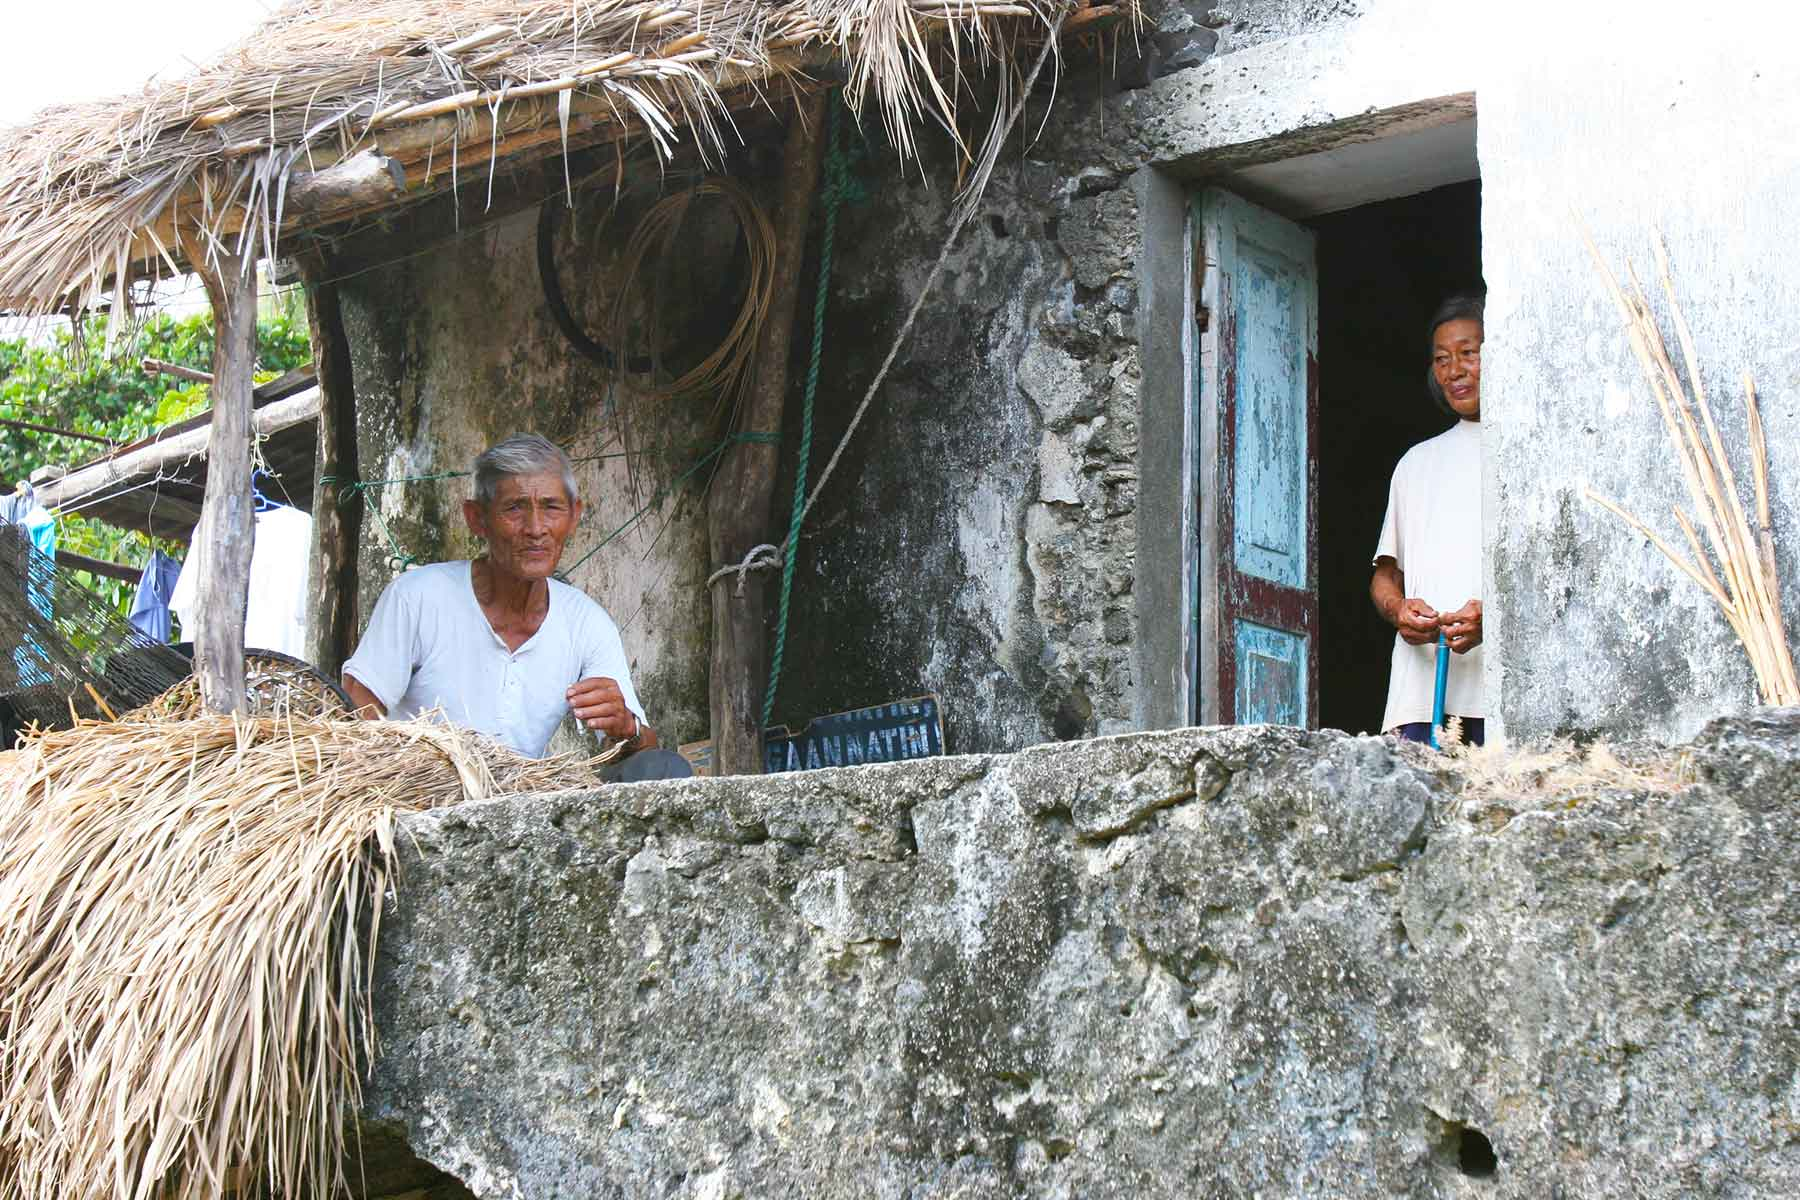 Batanes Islands - Ivatan House and Culture - Austronesian People - Steven Andrew Martin PhD